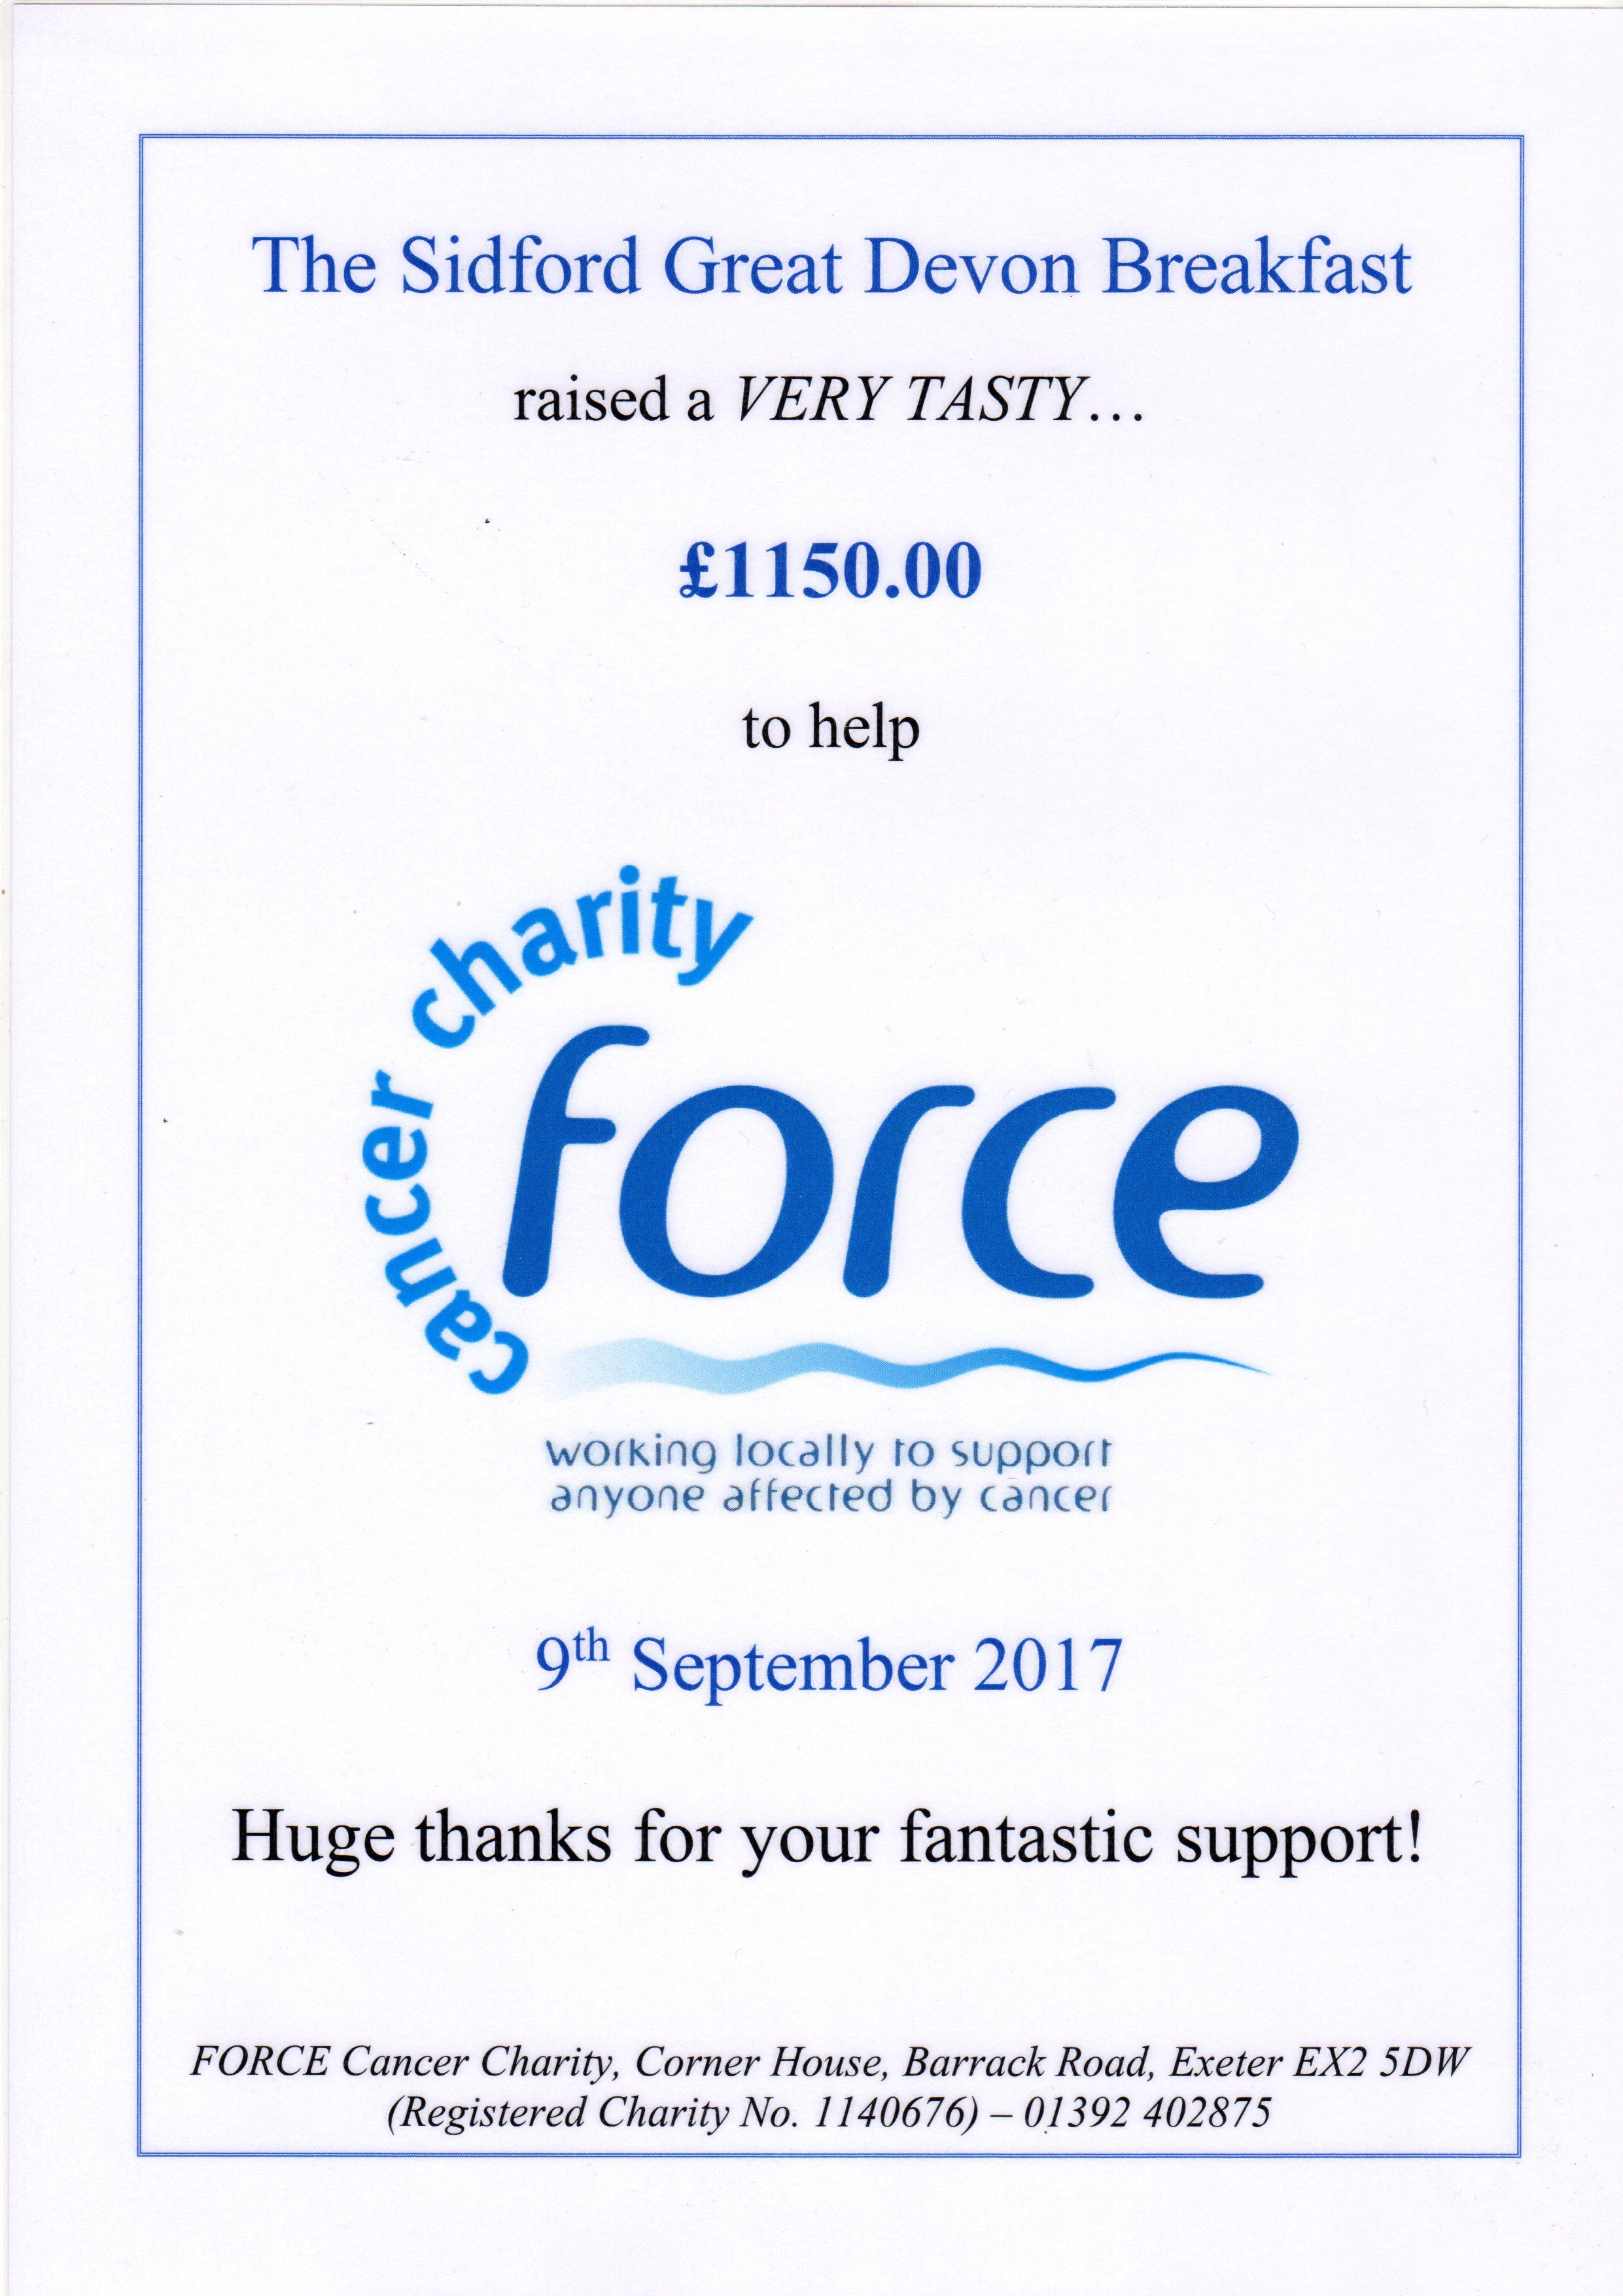 Hamiltons Sponsor FORCE Cancer Charity